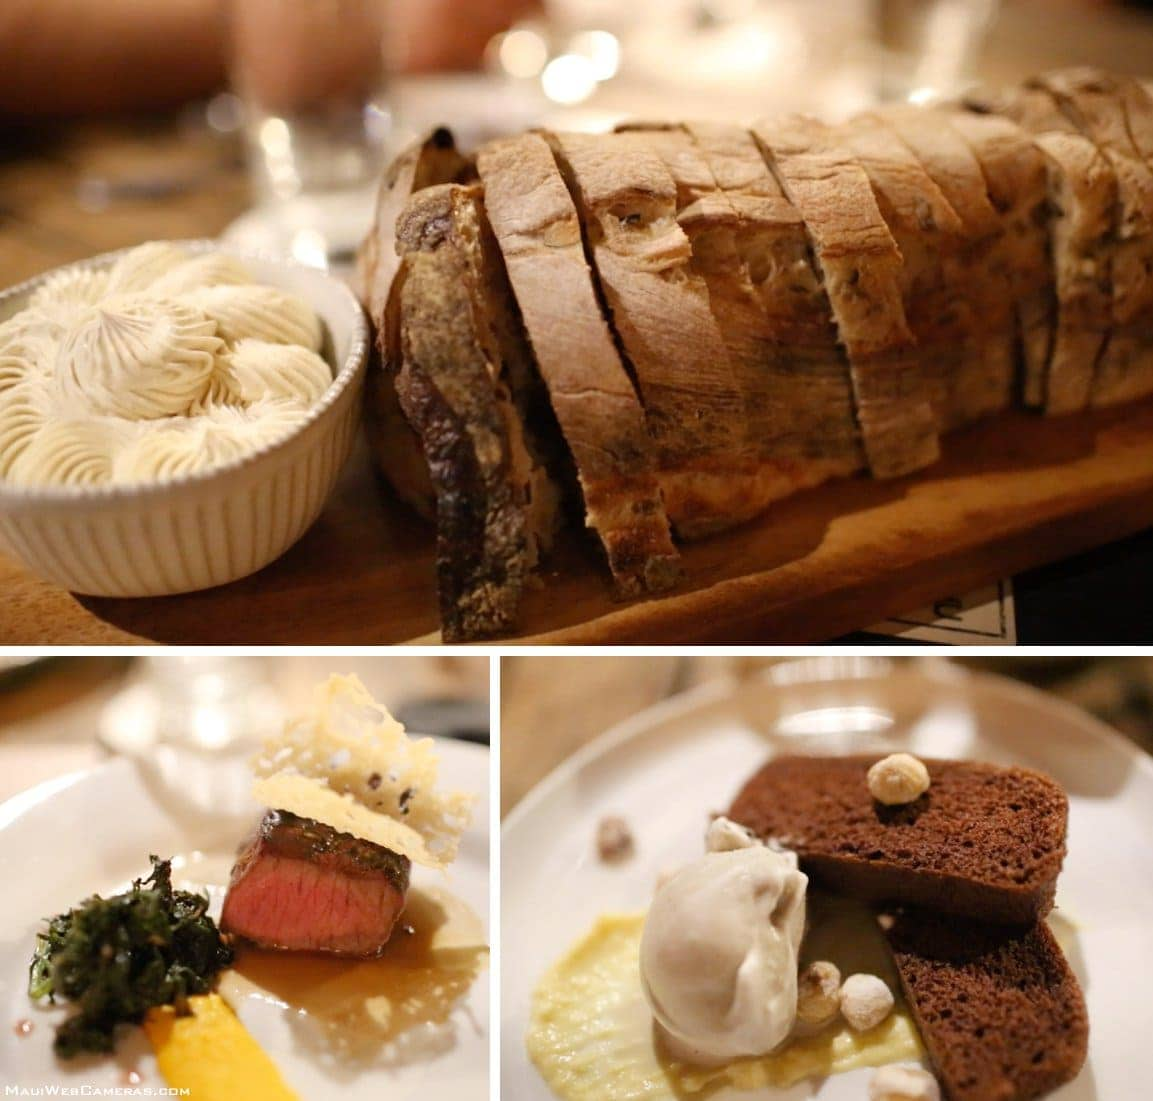 fresh bread, steak and dessert